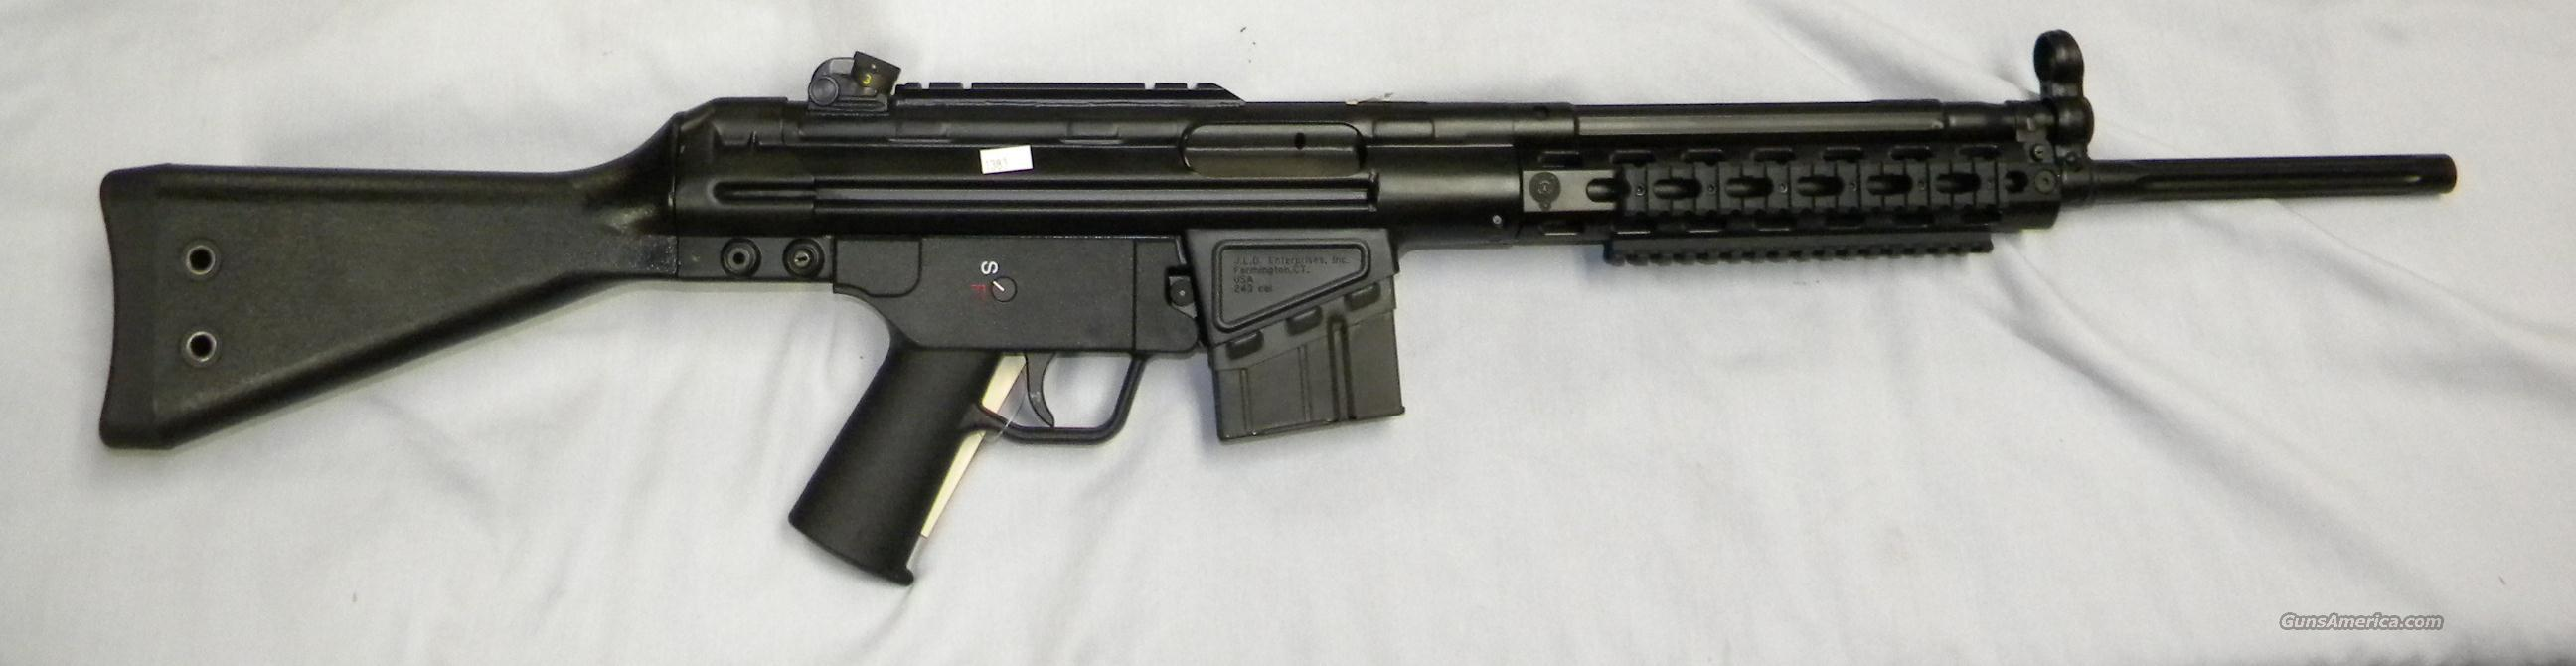 JLD PTR ( Precision Target Rifle) in .243  Guns > Rifles > Heckler & Koch Rifles > Sporting/Hunting